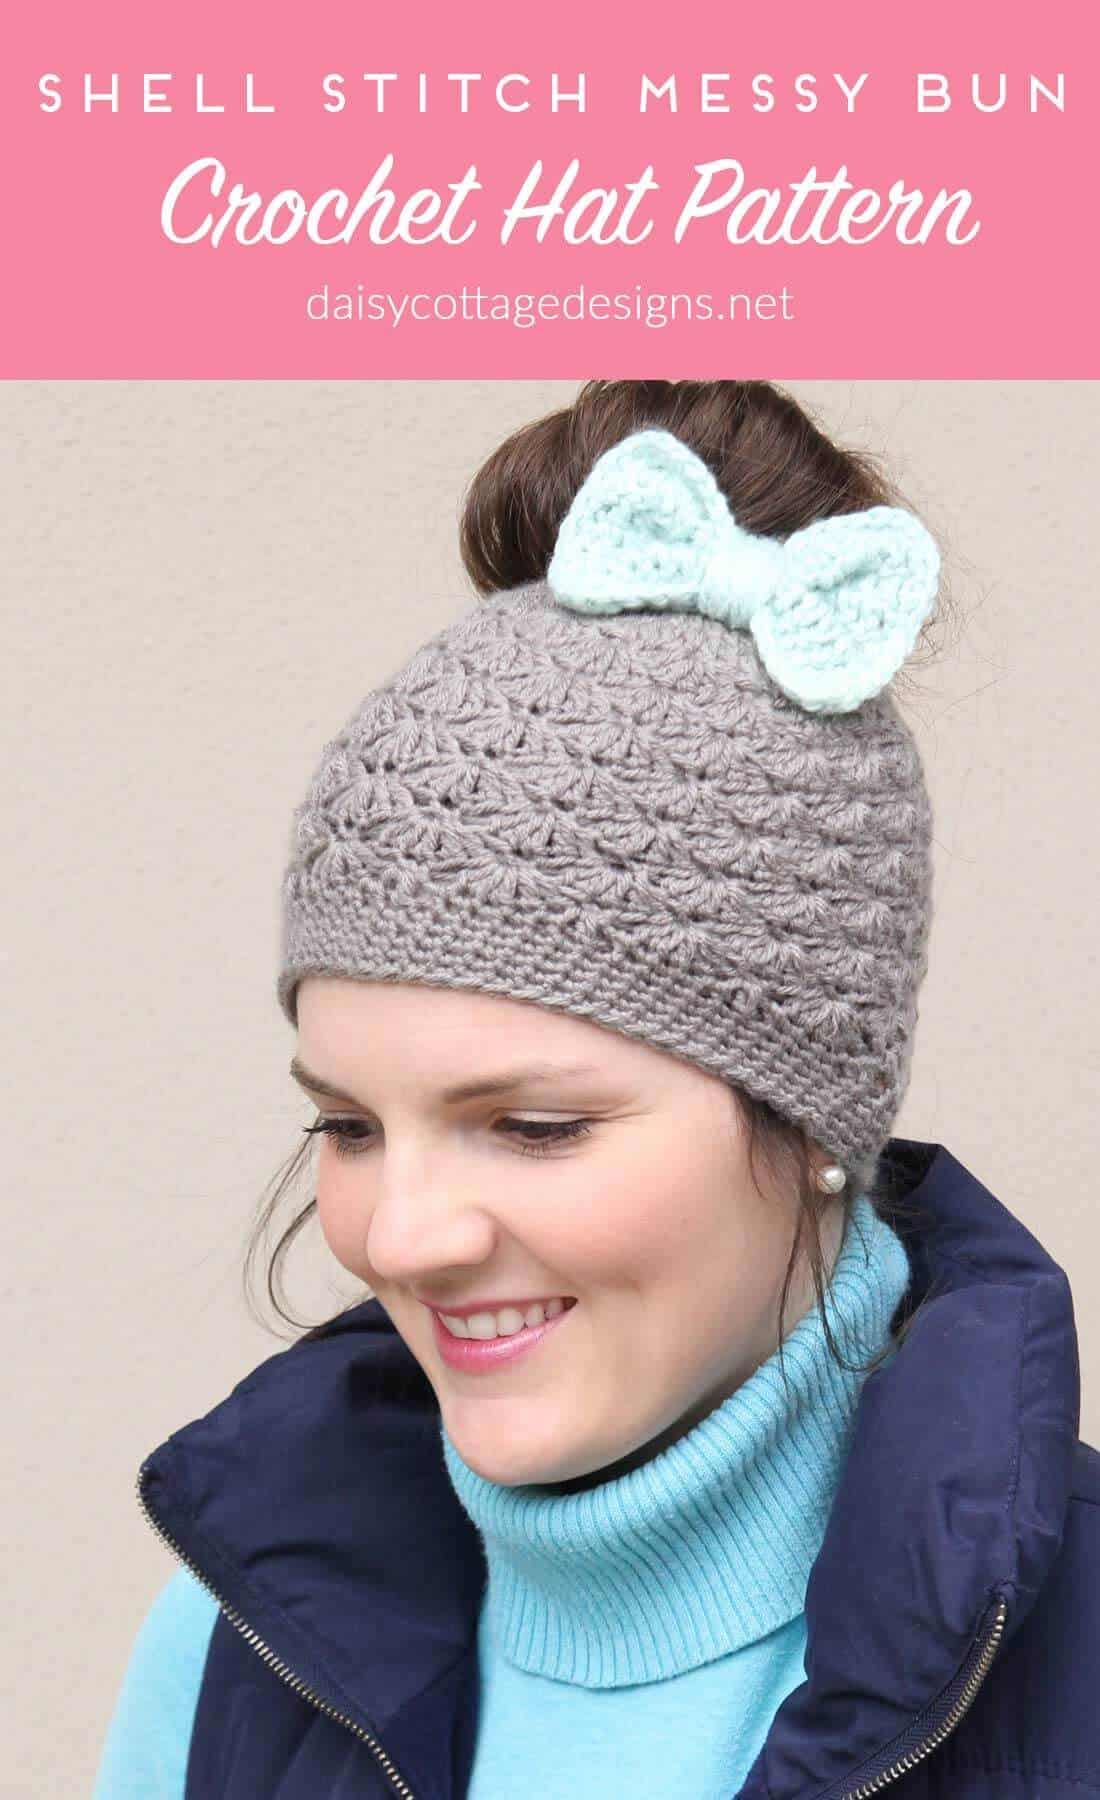 cff05b85ef9d2 Use this messy bun crochet hat pattern from Daisy Cottage Designs to make  this beautiful messy